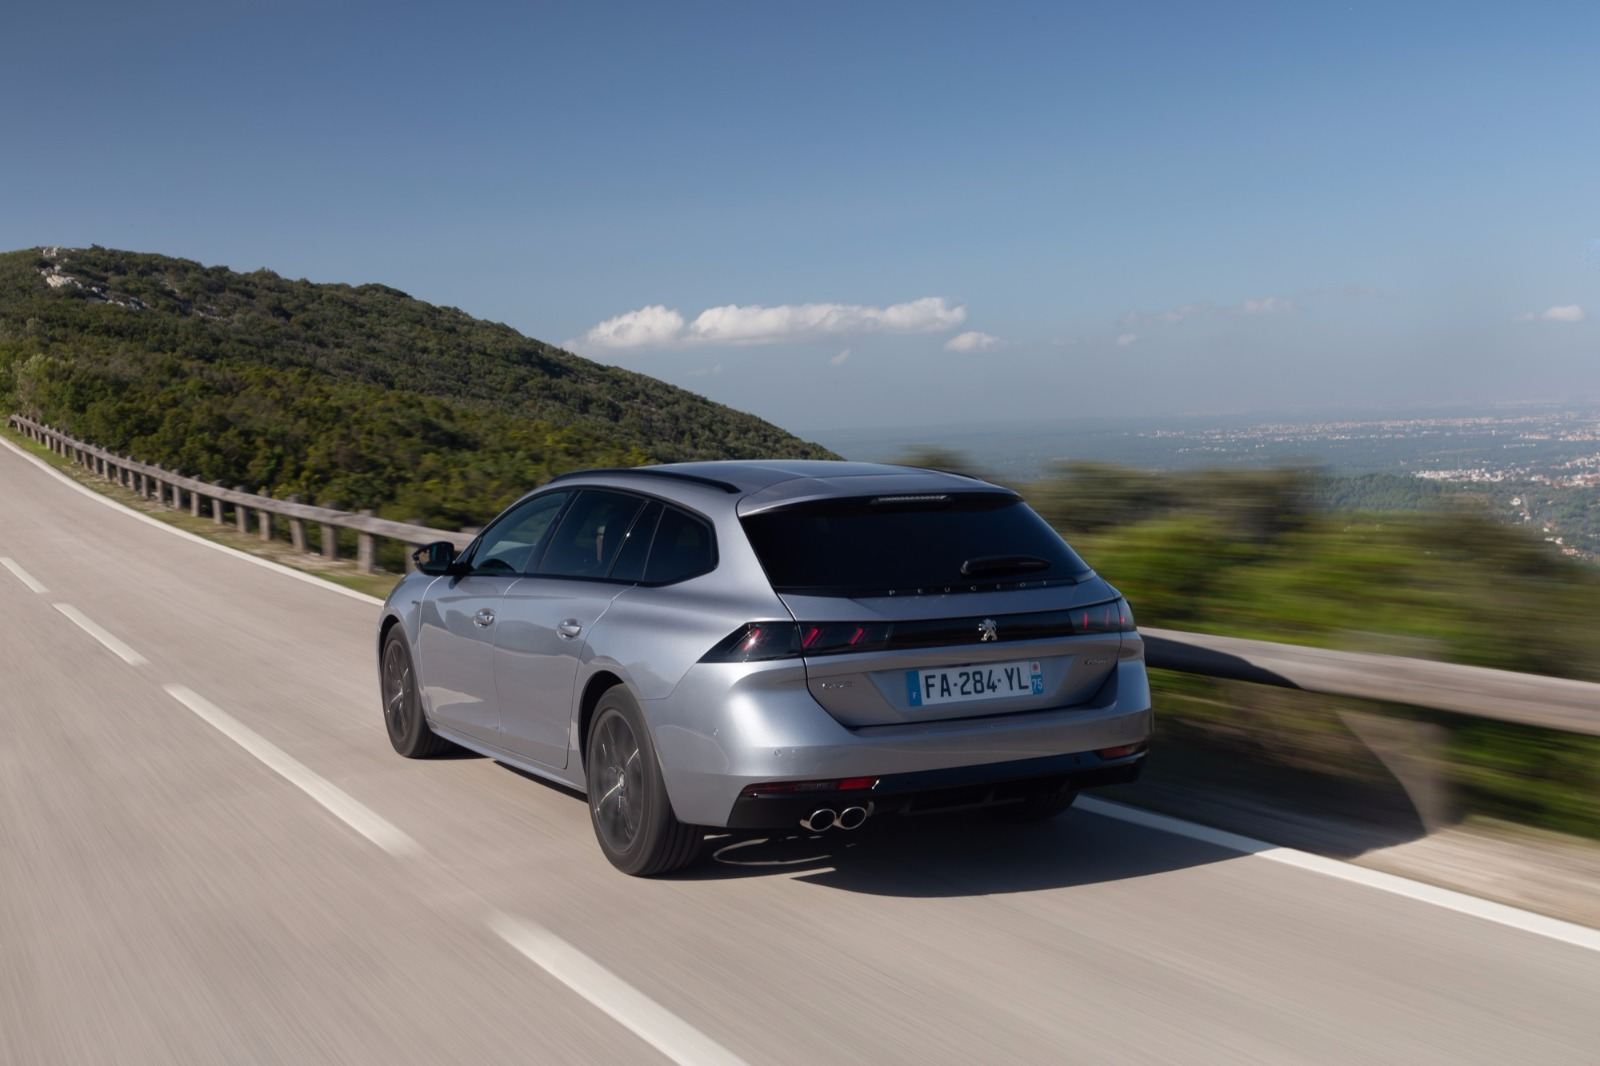 FEATURE: Exclusive - The Peugeot 508 SportWagon Is Gorgeous